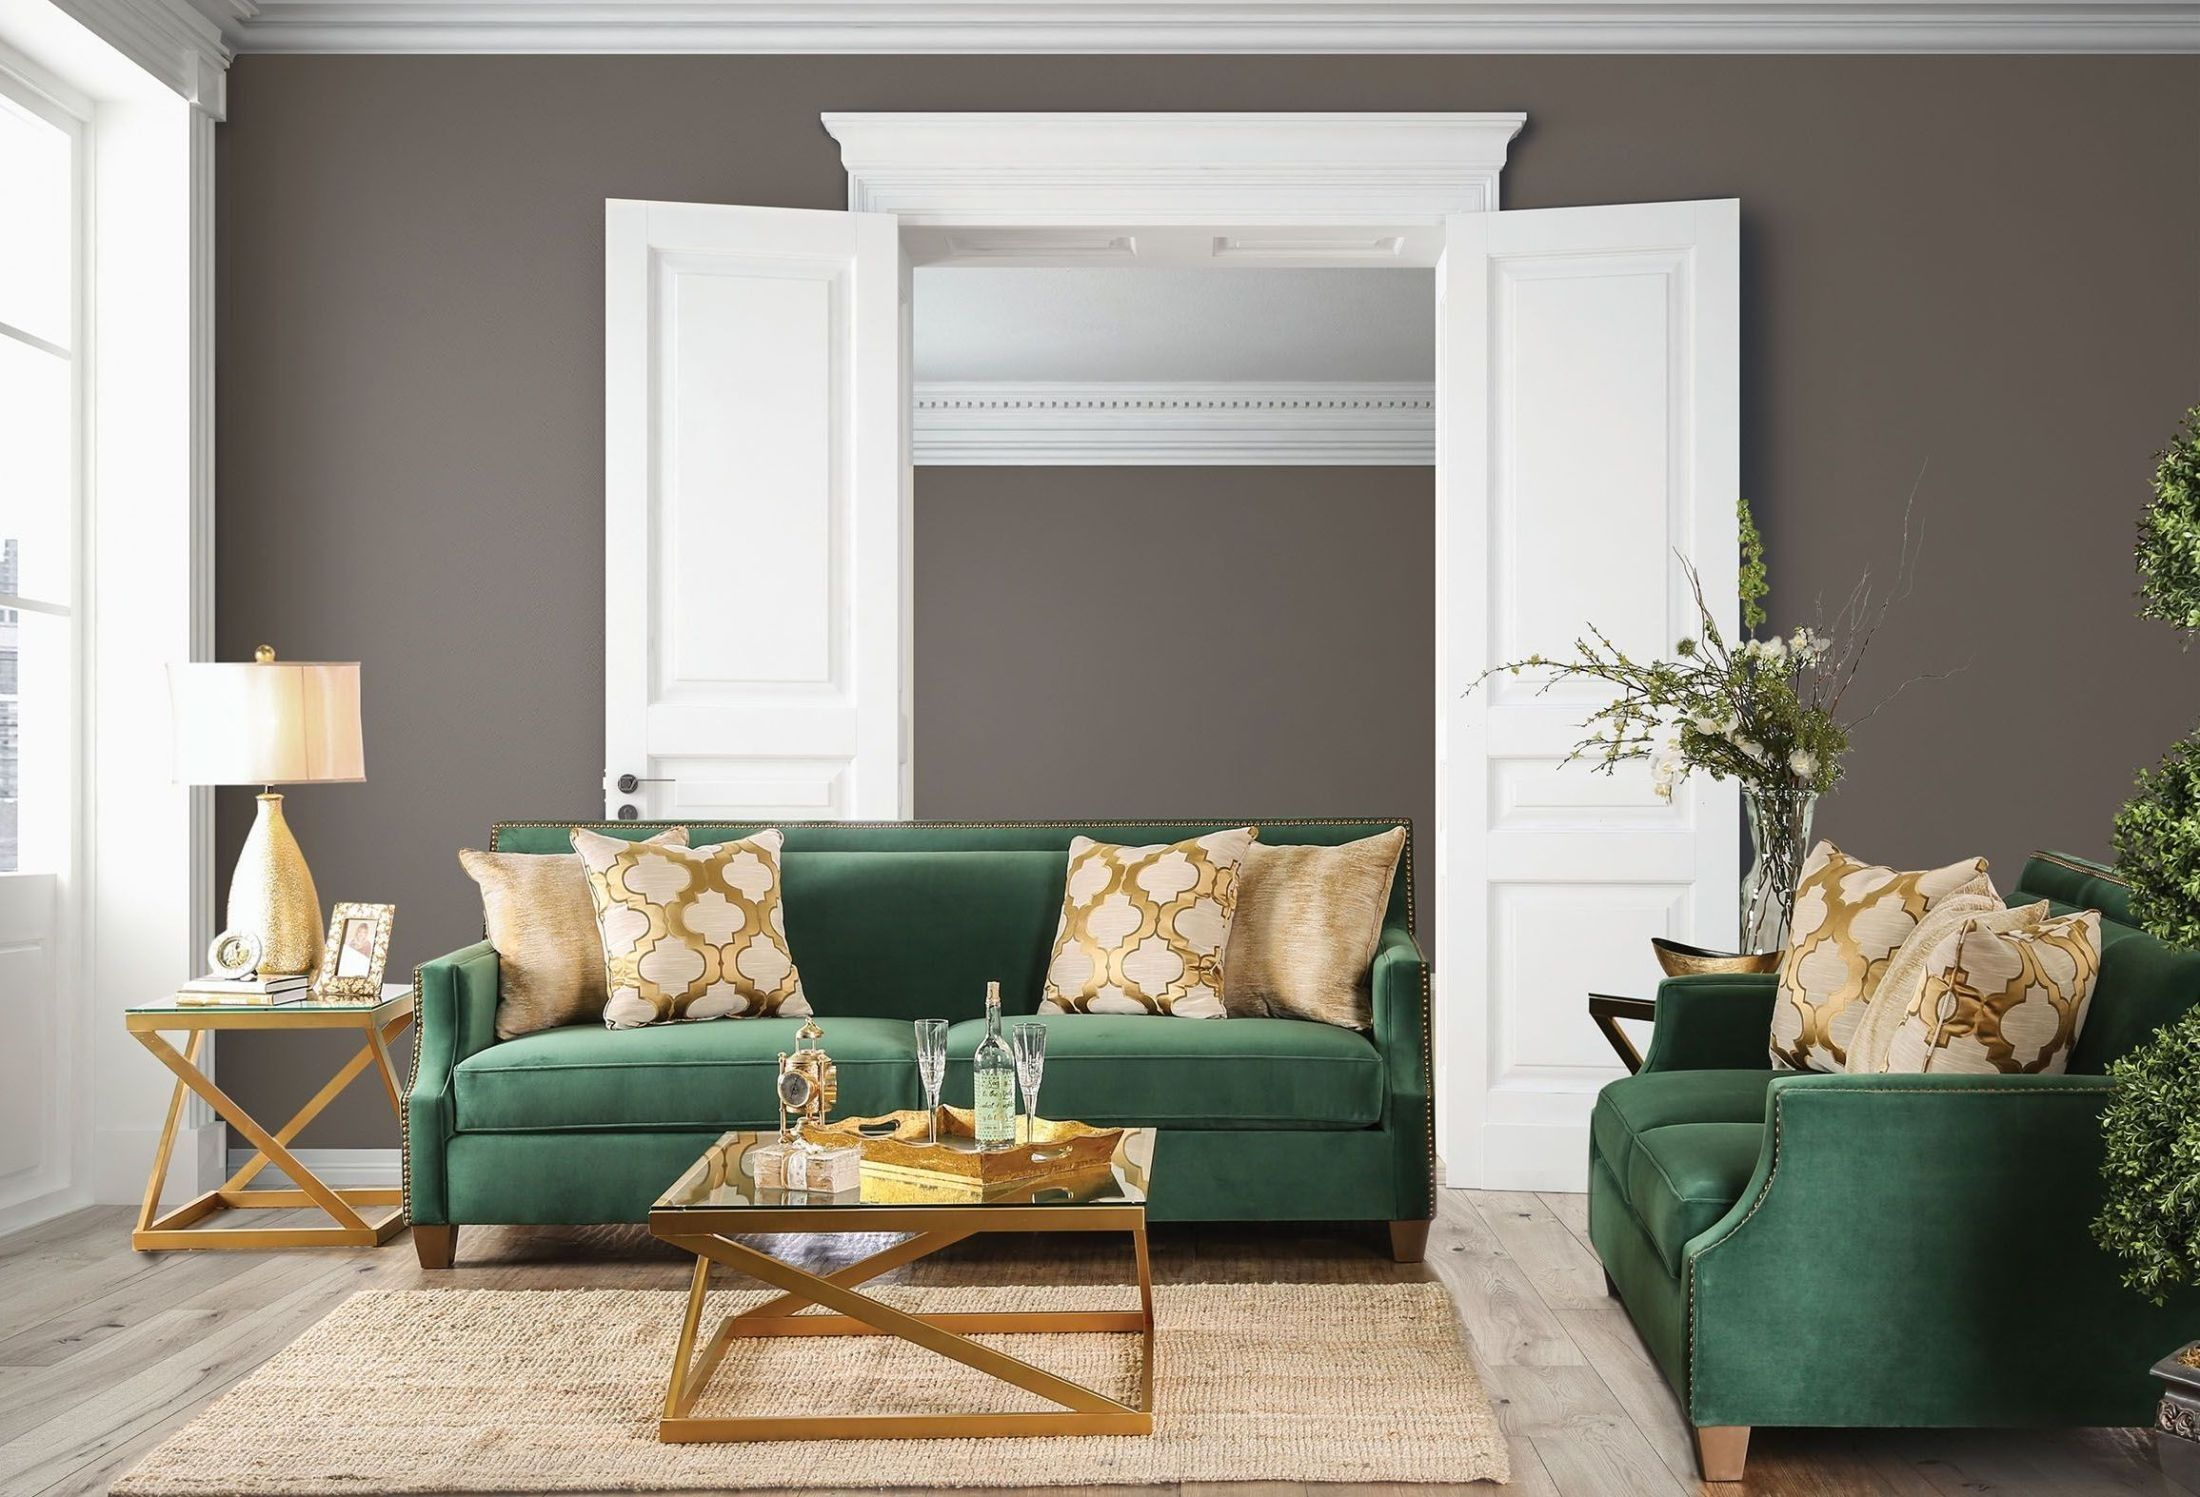 So Quick Decorating Tricks For An Instant Update Green Sofa Living Room Green Sofa Living Green Couch Living Room